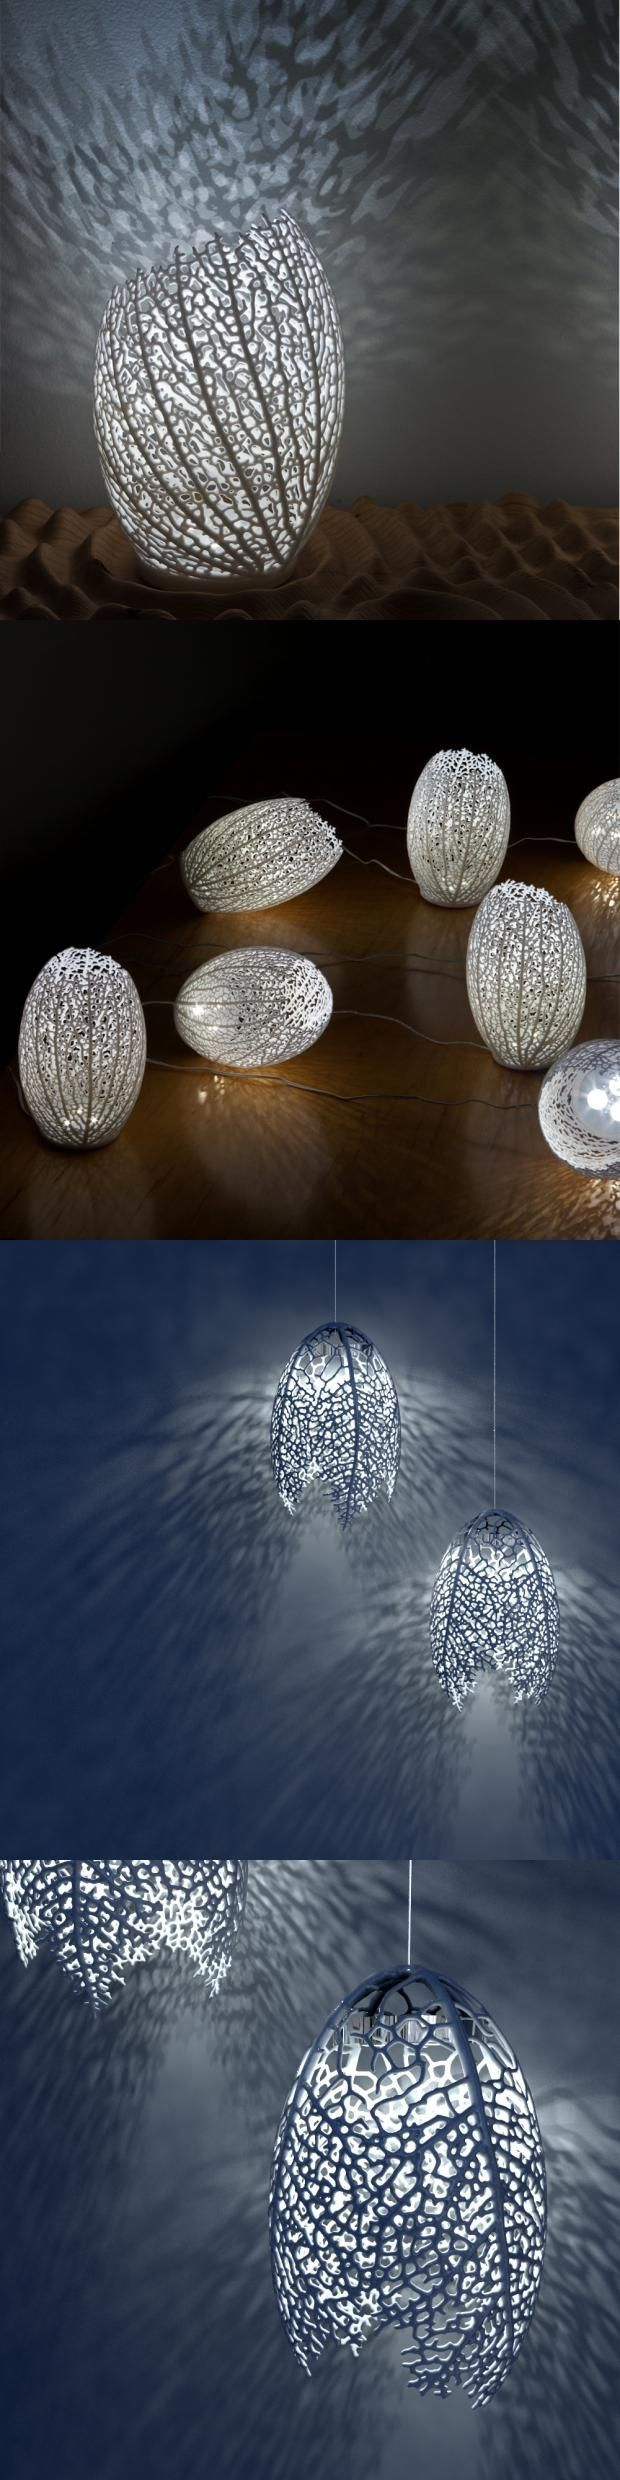 The Hyphae lamp is a series of organic table lamps based on how veins form in leaves. Each lamp is a completely one-of-a-kind design 3D-printed in nylon plastic. The lamps are lit by eco-friendly LED's and cast dramatic branching shadows on the wall and ceiling. You will receive a lamp similar to the ones featured in the photos but not identical as all are unique.: